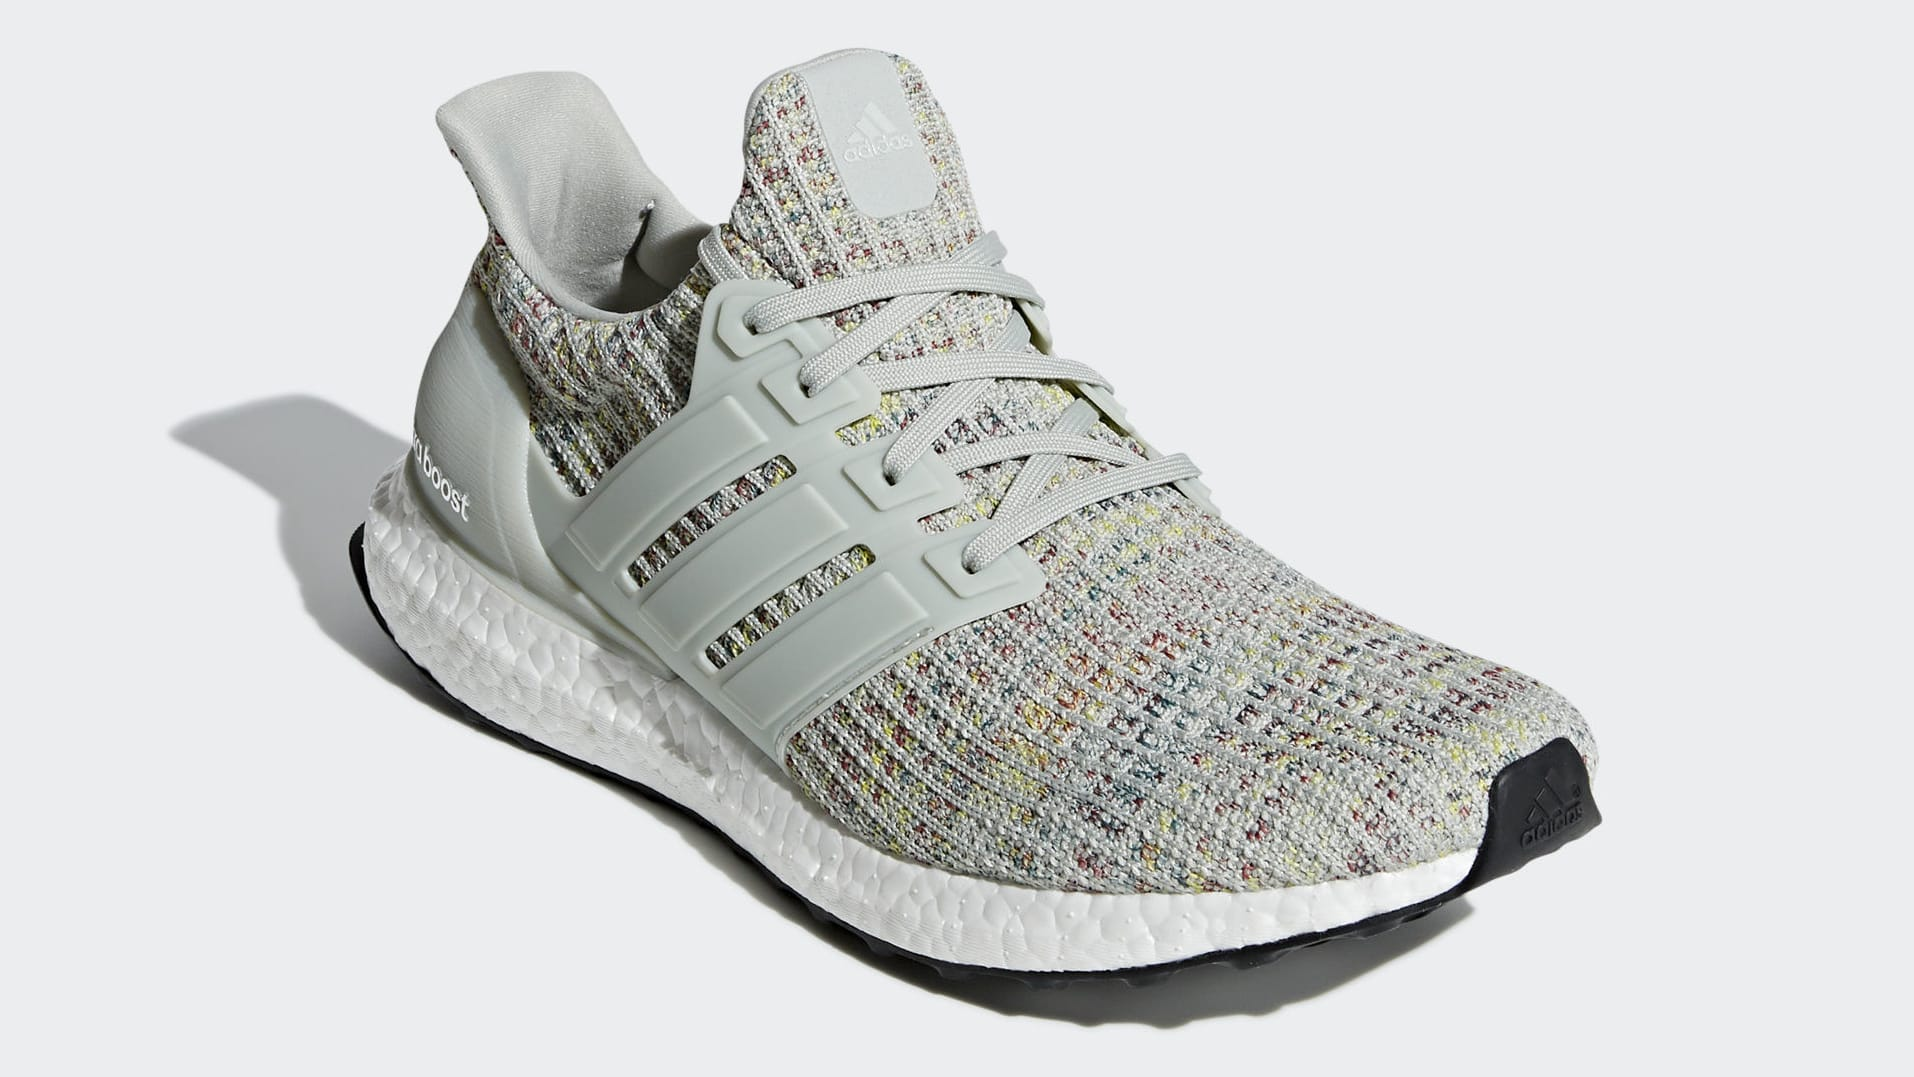 adidas-ultra-boost-4.0-multicolor-cm8109-06-front